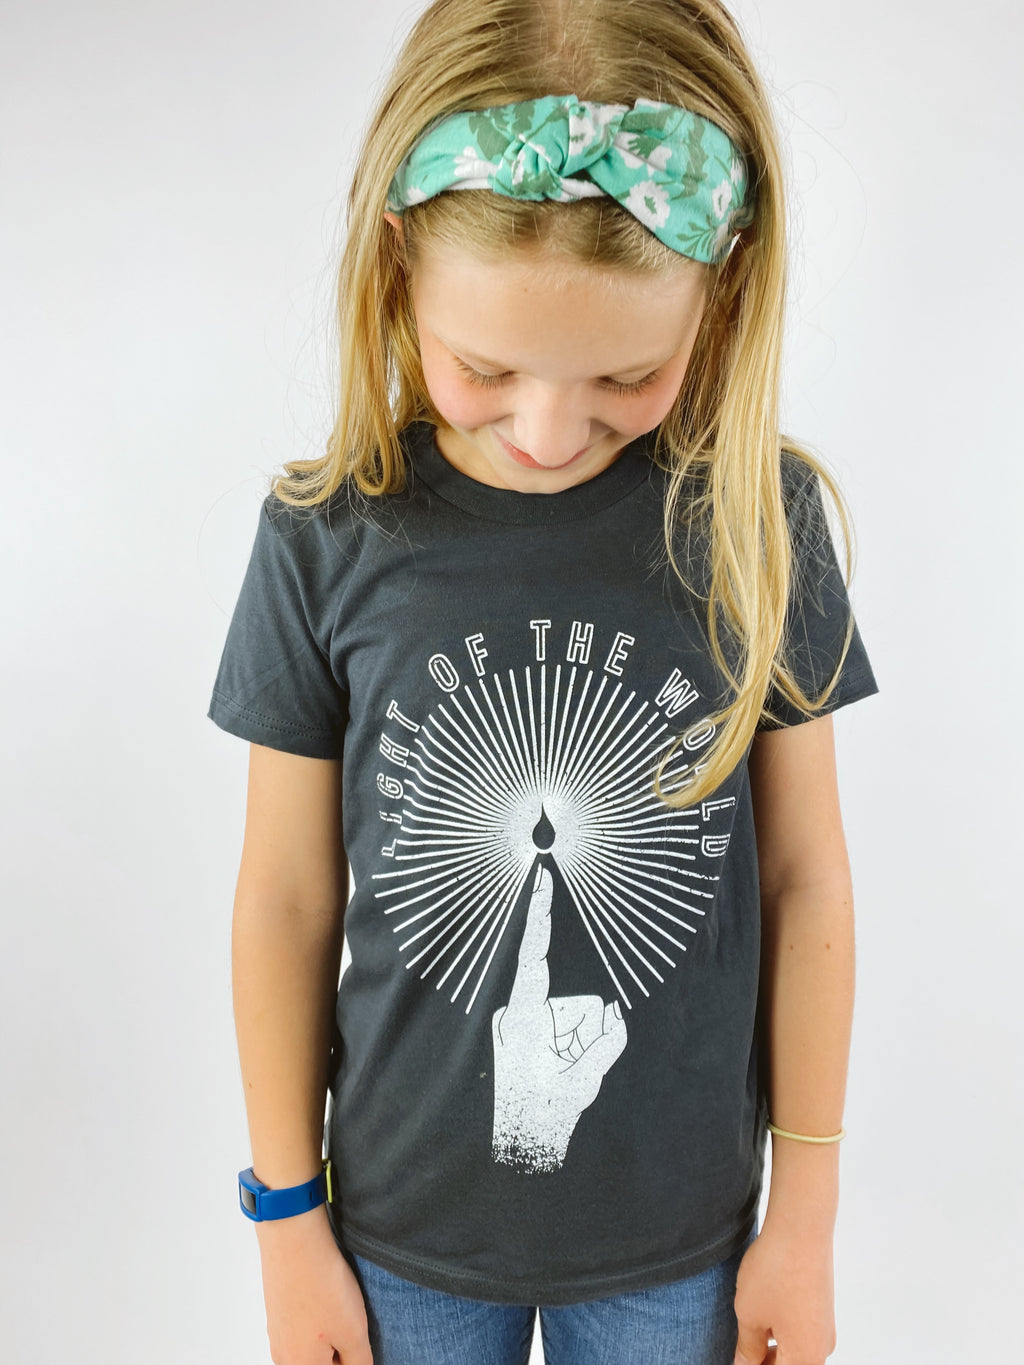 Light of the World Tee - Unisex Kids